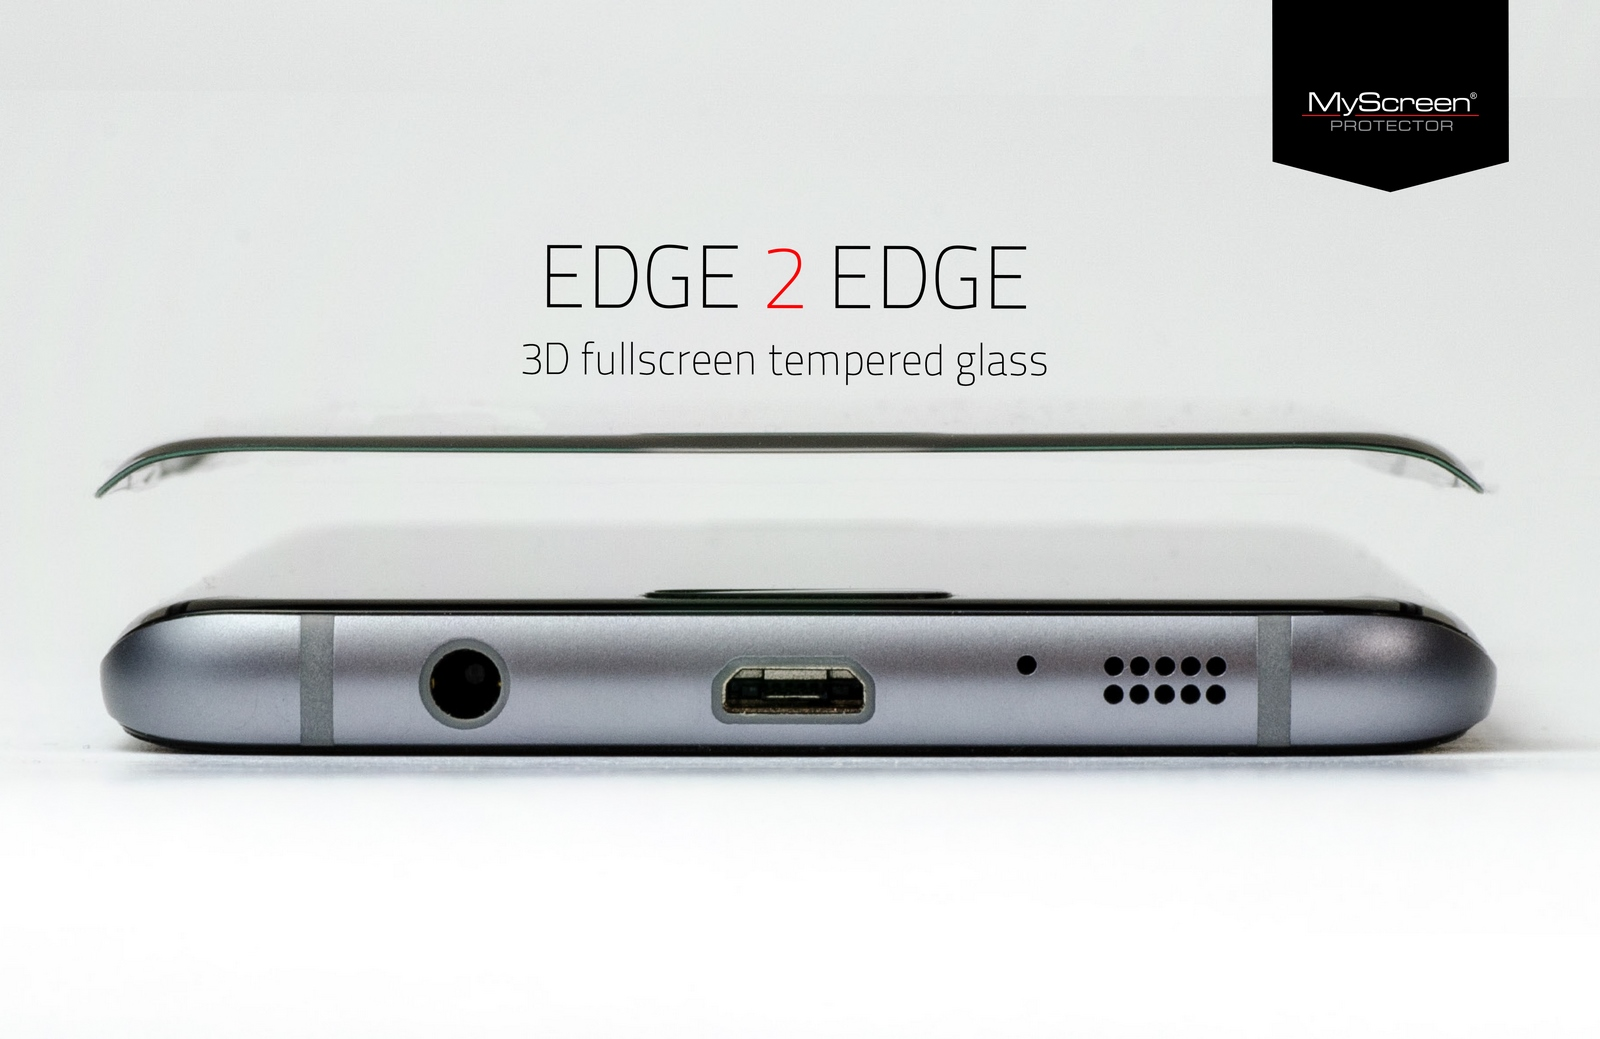 MyScreen DIAMOND GLASS edge 3D